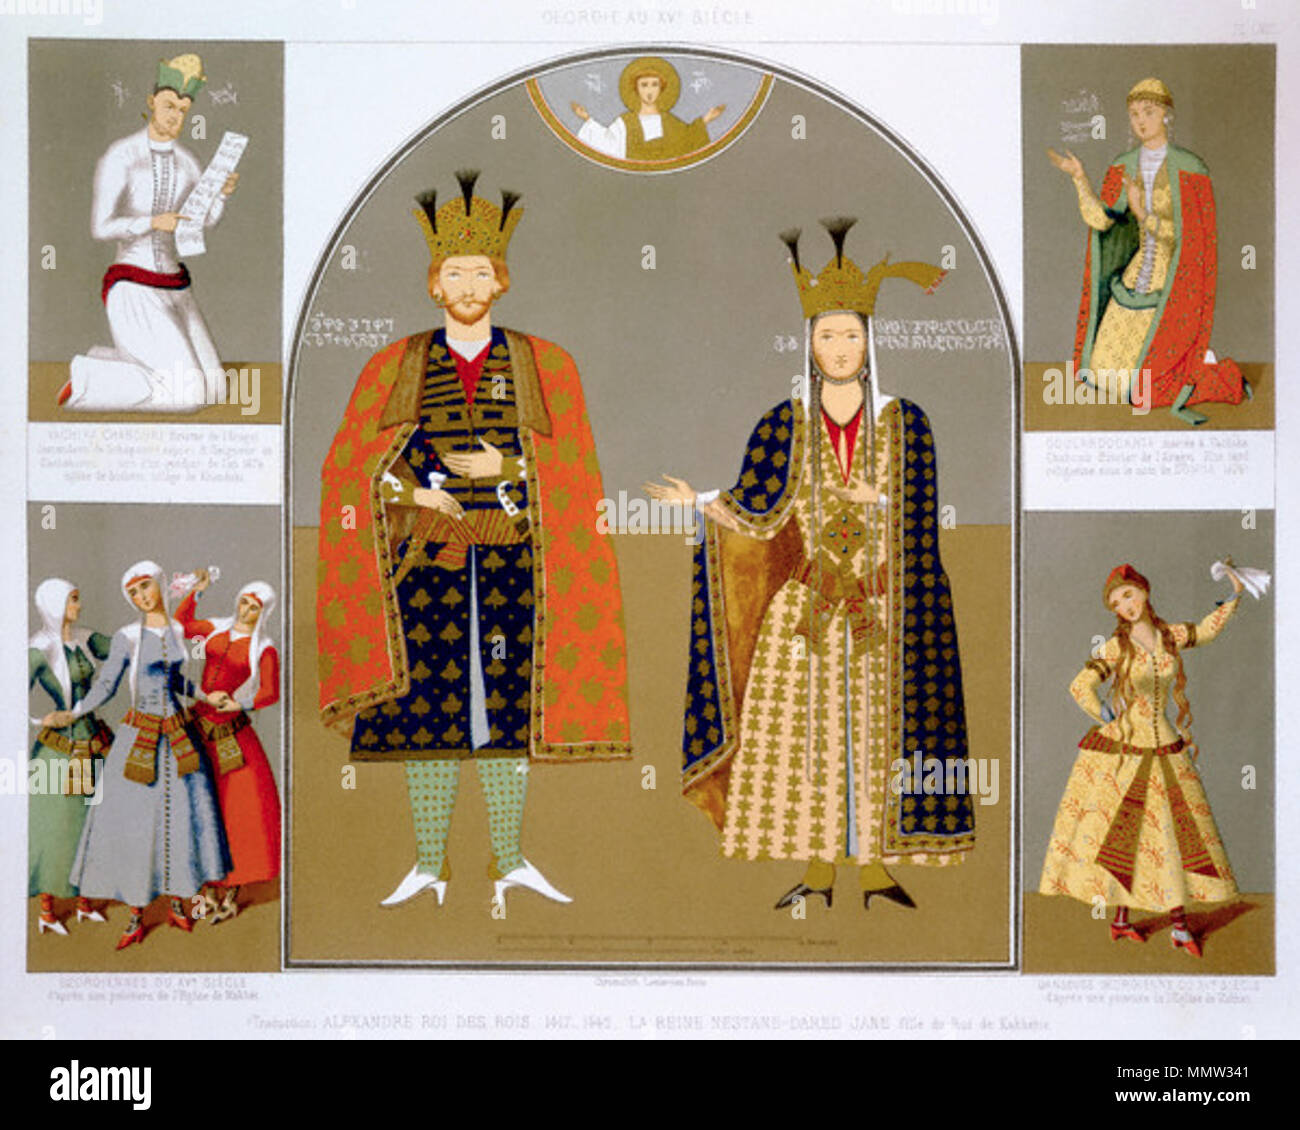 .  English: Chromolithograph Depicting Georgian King Alexander I and Queen Nastane-Dared Jane with Other Royal Figures by Armand Theophile Cassagne Français: Georgie au XVI siecle. Alexandre, roi des rois,1417-1442.  .  Published 1847  Date photographed: circa 2003  . Chromolithograph Depicting Georgian King Alexander I and Queen Nastane-Dared Jane with Other Royal Figures by Armand Theophile Cassagne - Stock Image